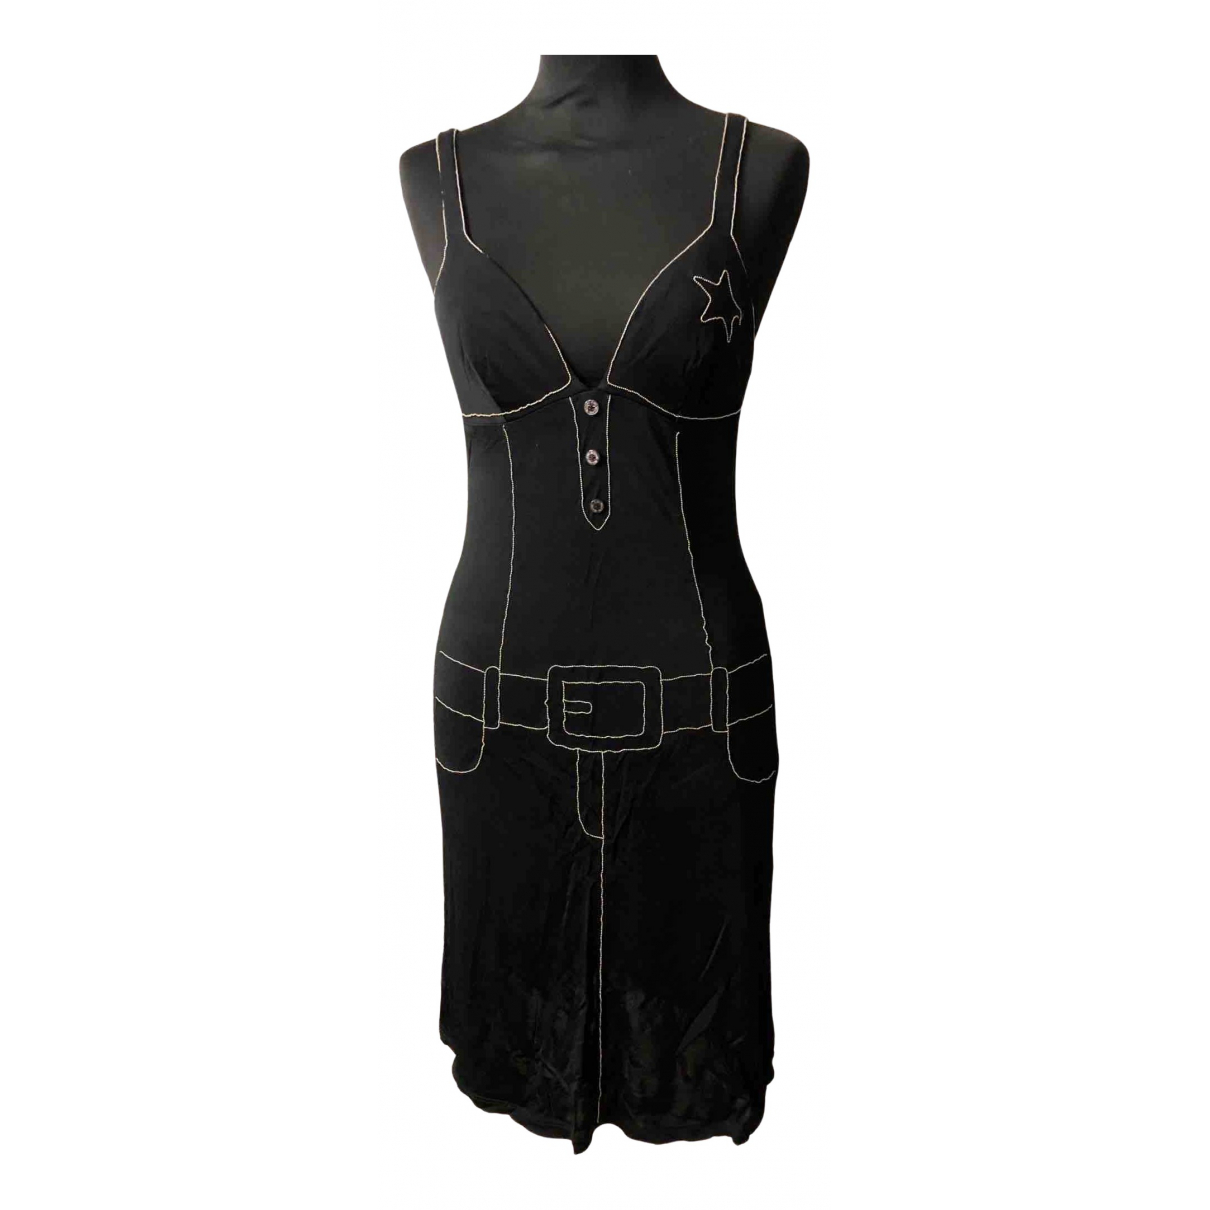 Moschino Cheap And Chic \N Black dress for Women 40 IT